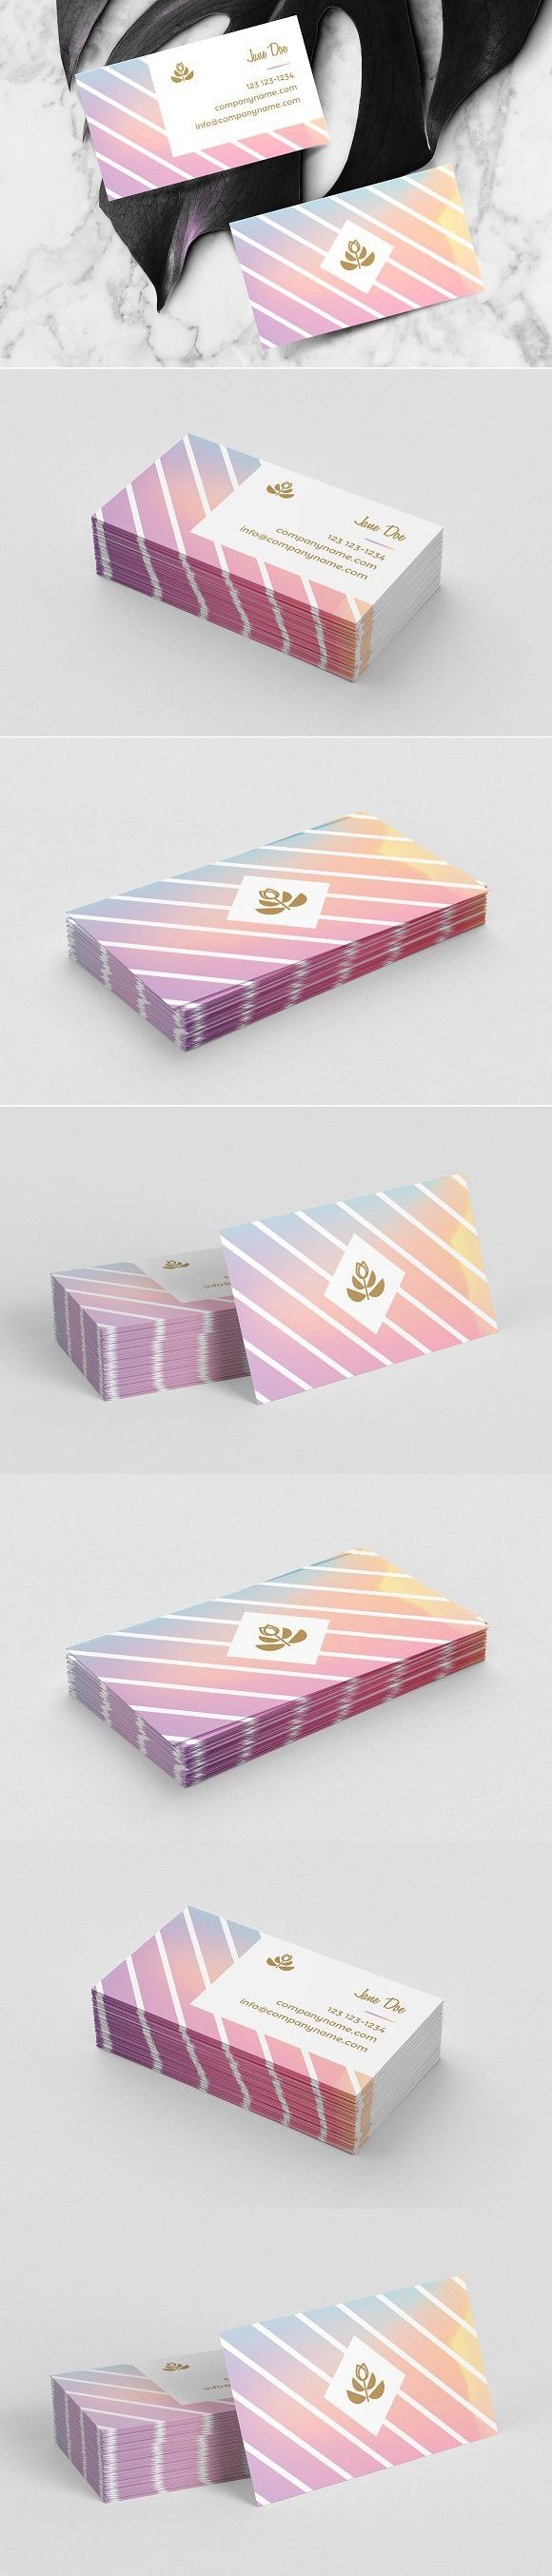 Feminine business card template | Holographic background, Card ...